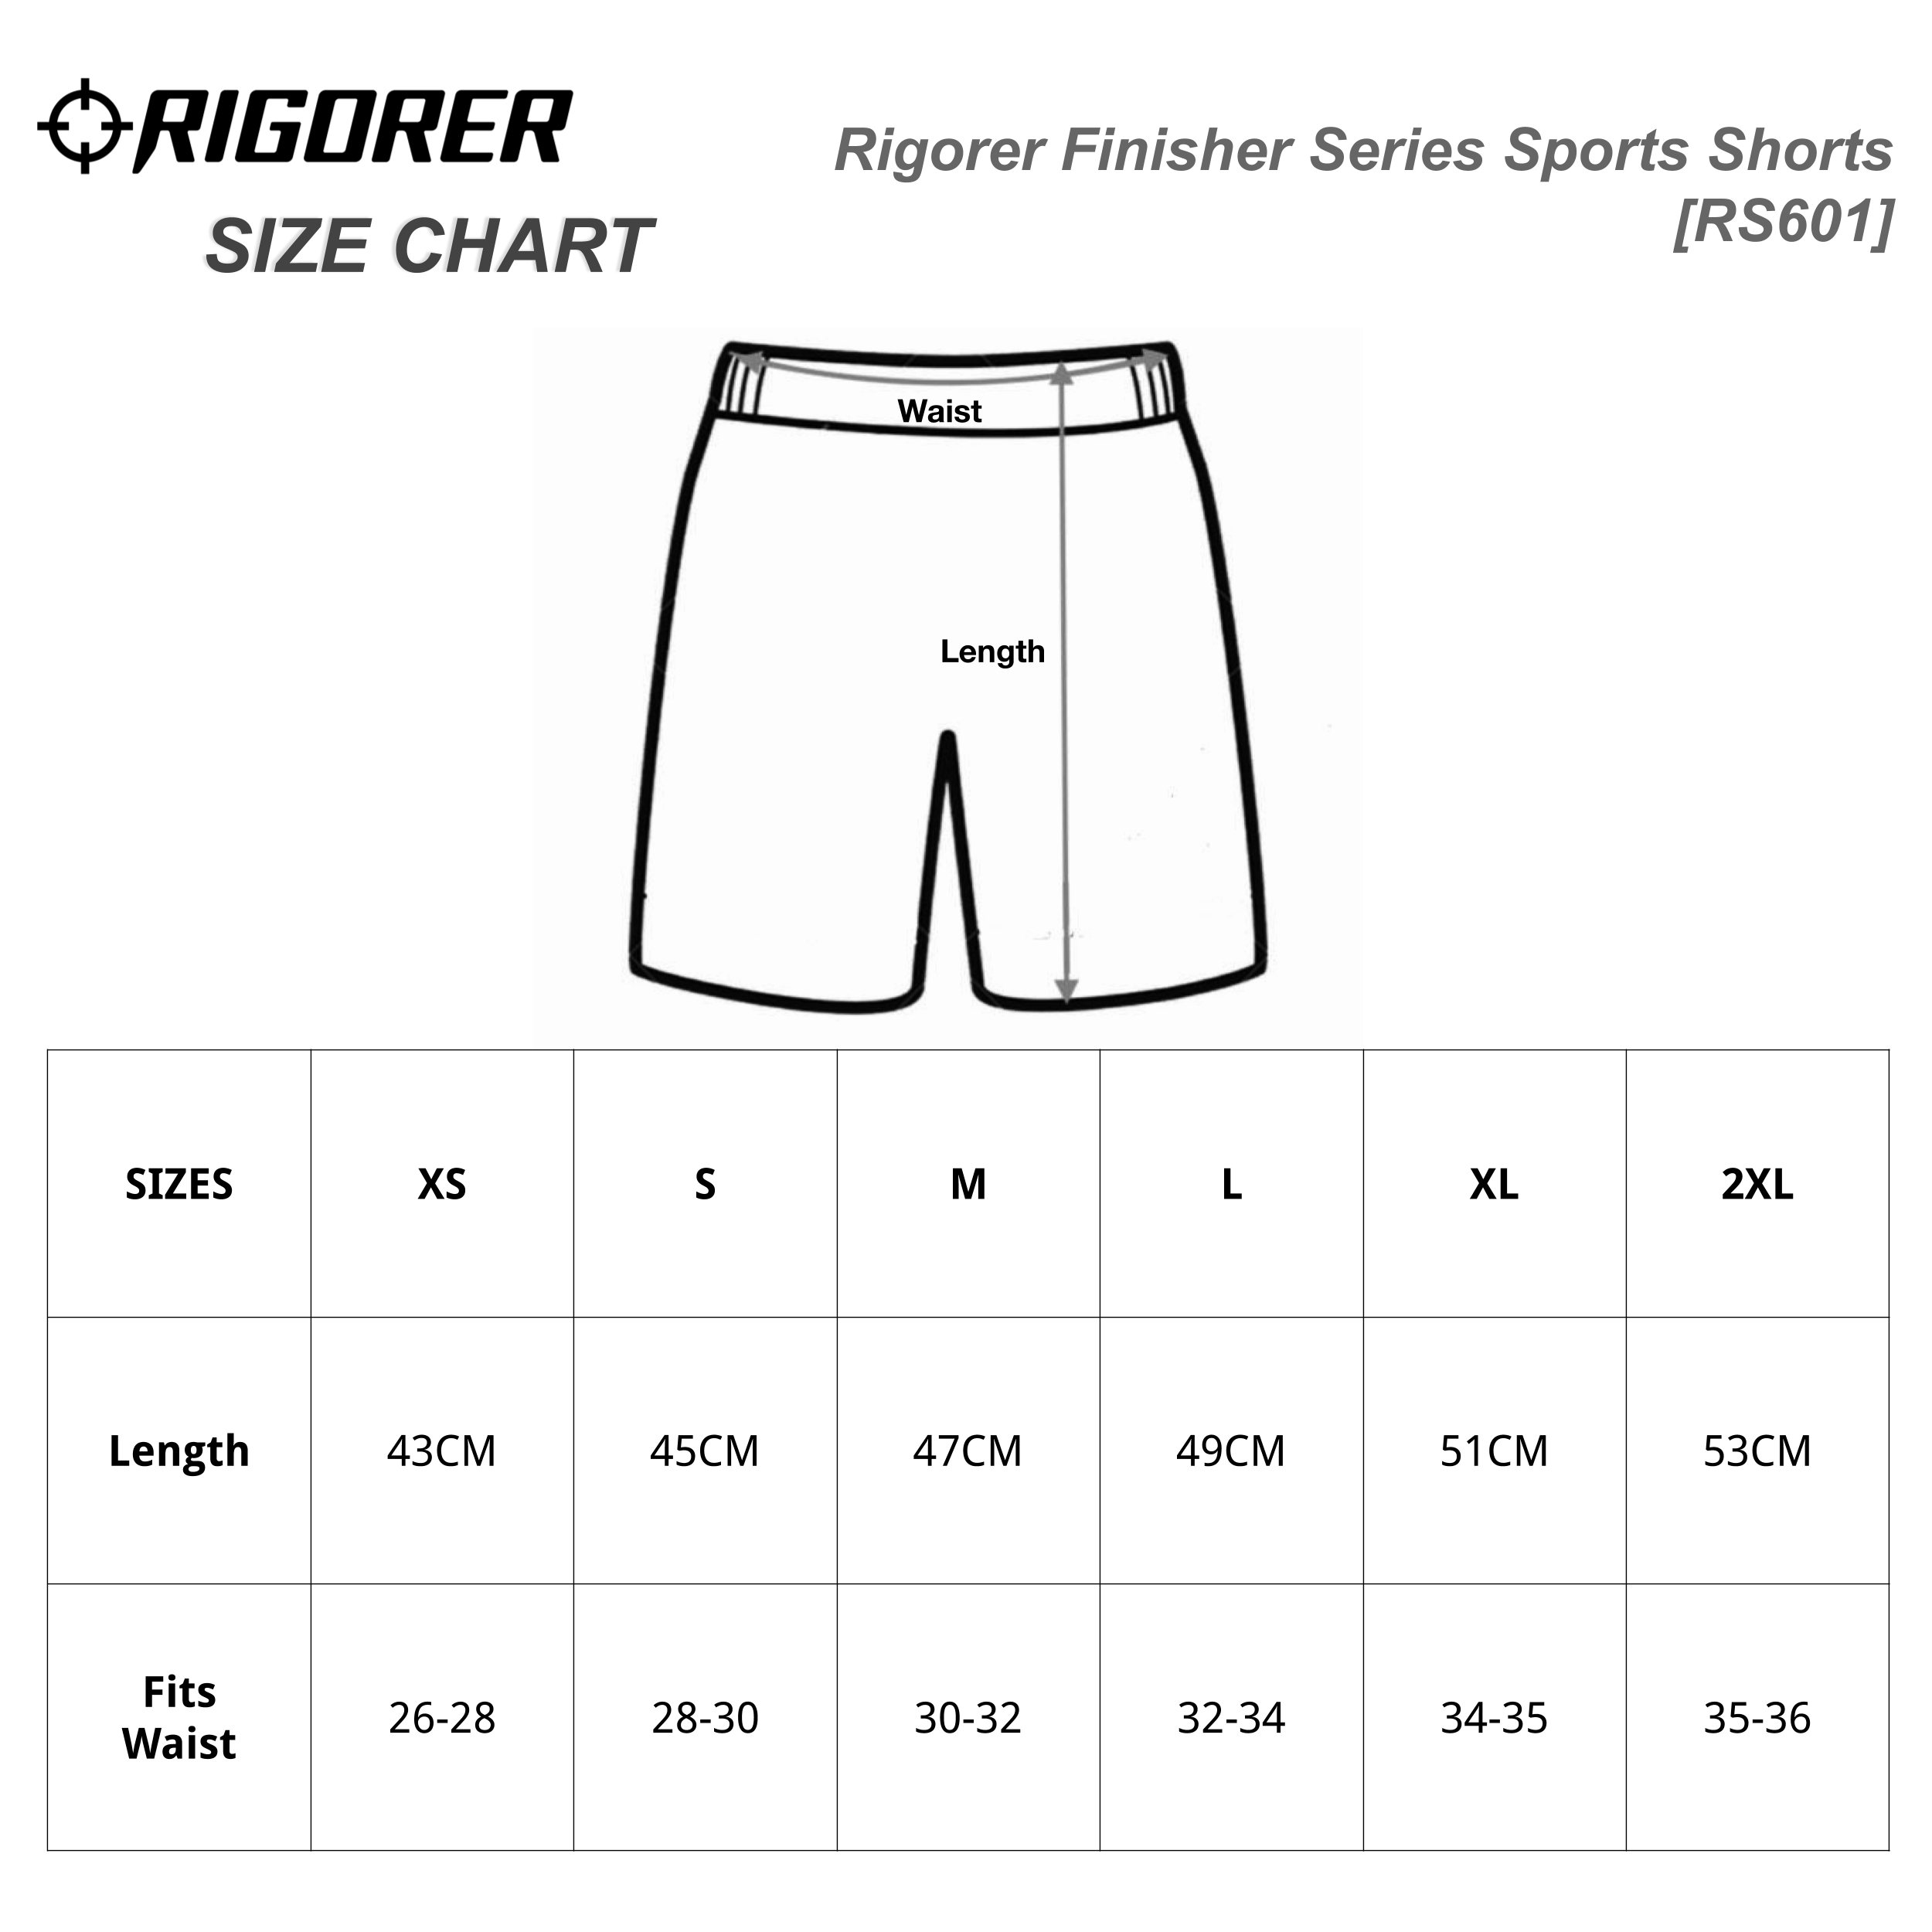 Rigorer Finisher Series Sports Shorts [RS601] Sizing Chart